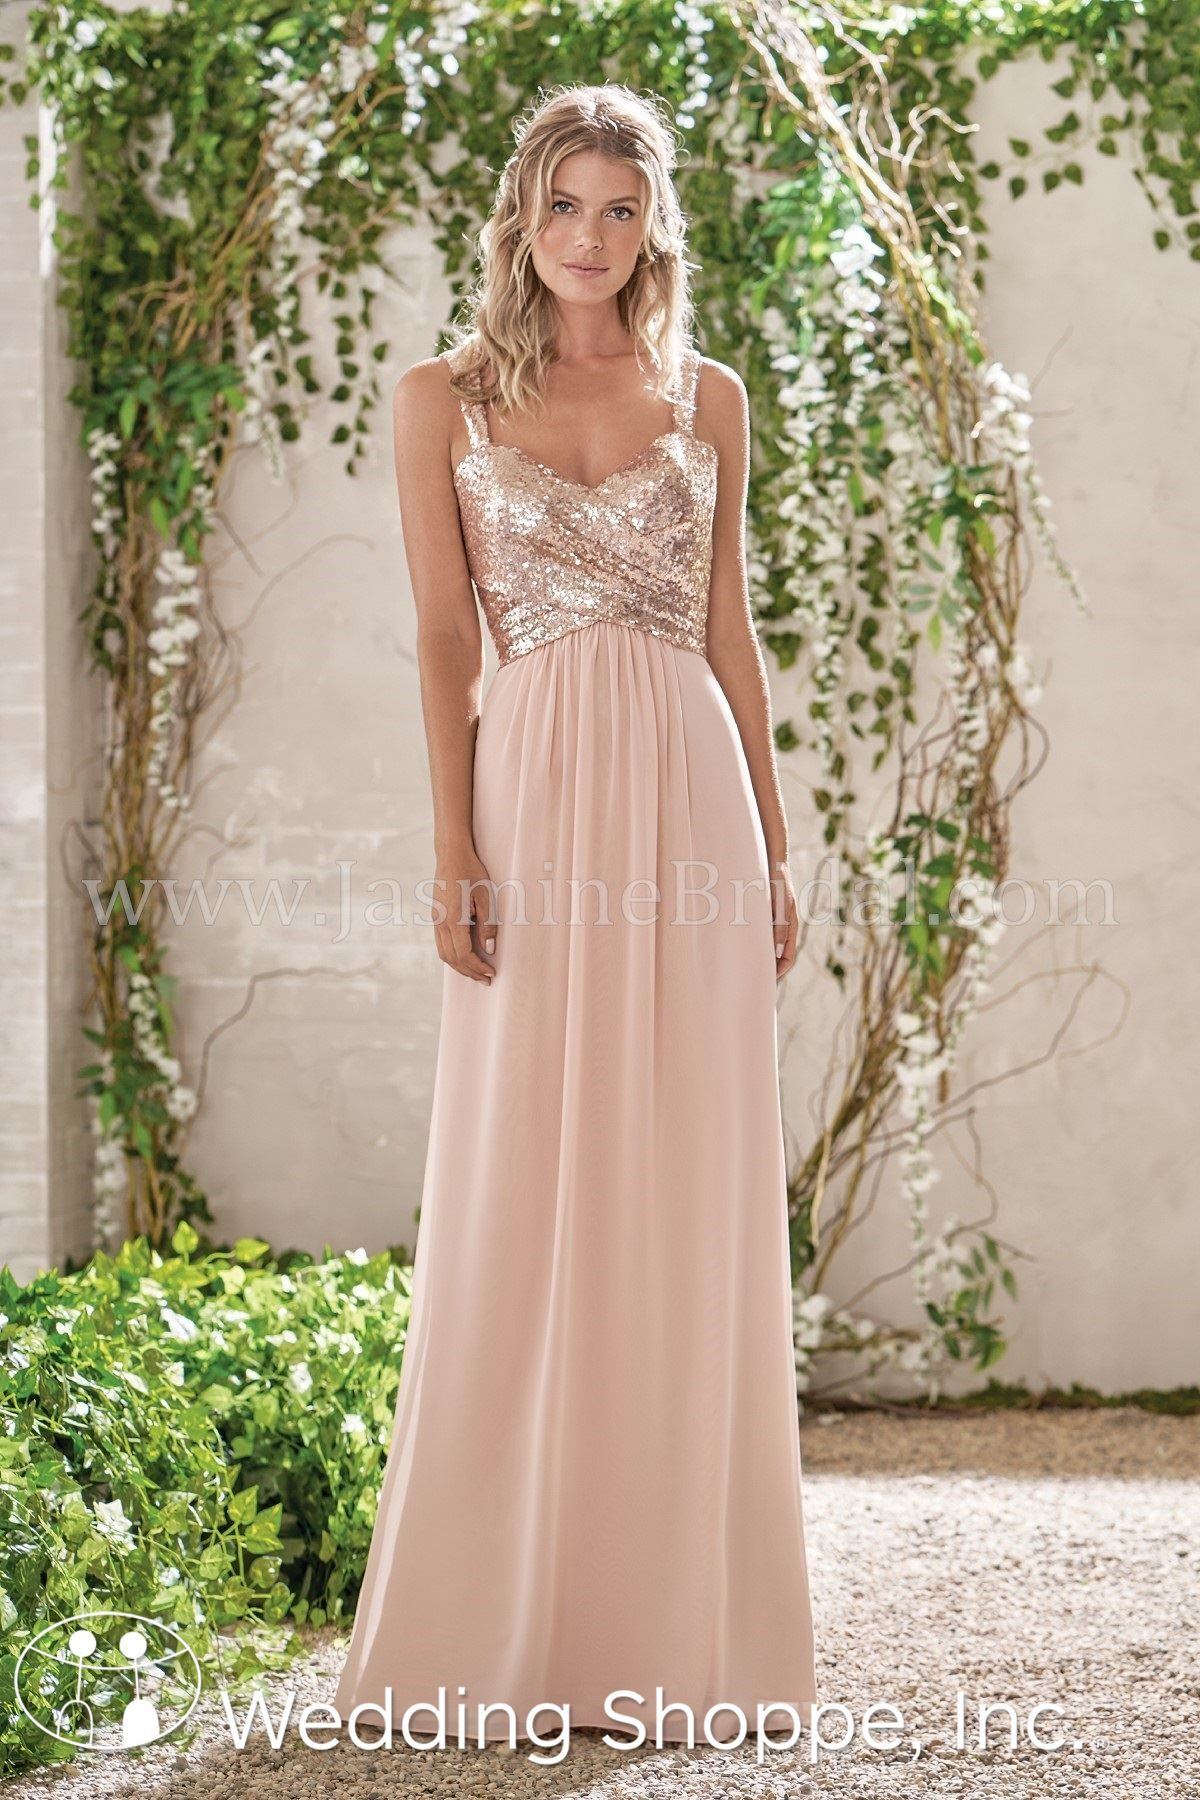 B2 bridesmaid dress b193005 bodice neckline and sequins b2 bridesmaid dress b193005 young weddingrose gold sequin ombrellifo Images